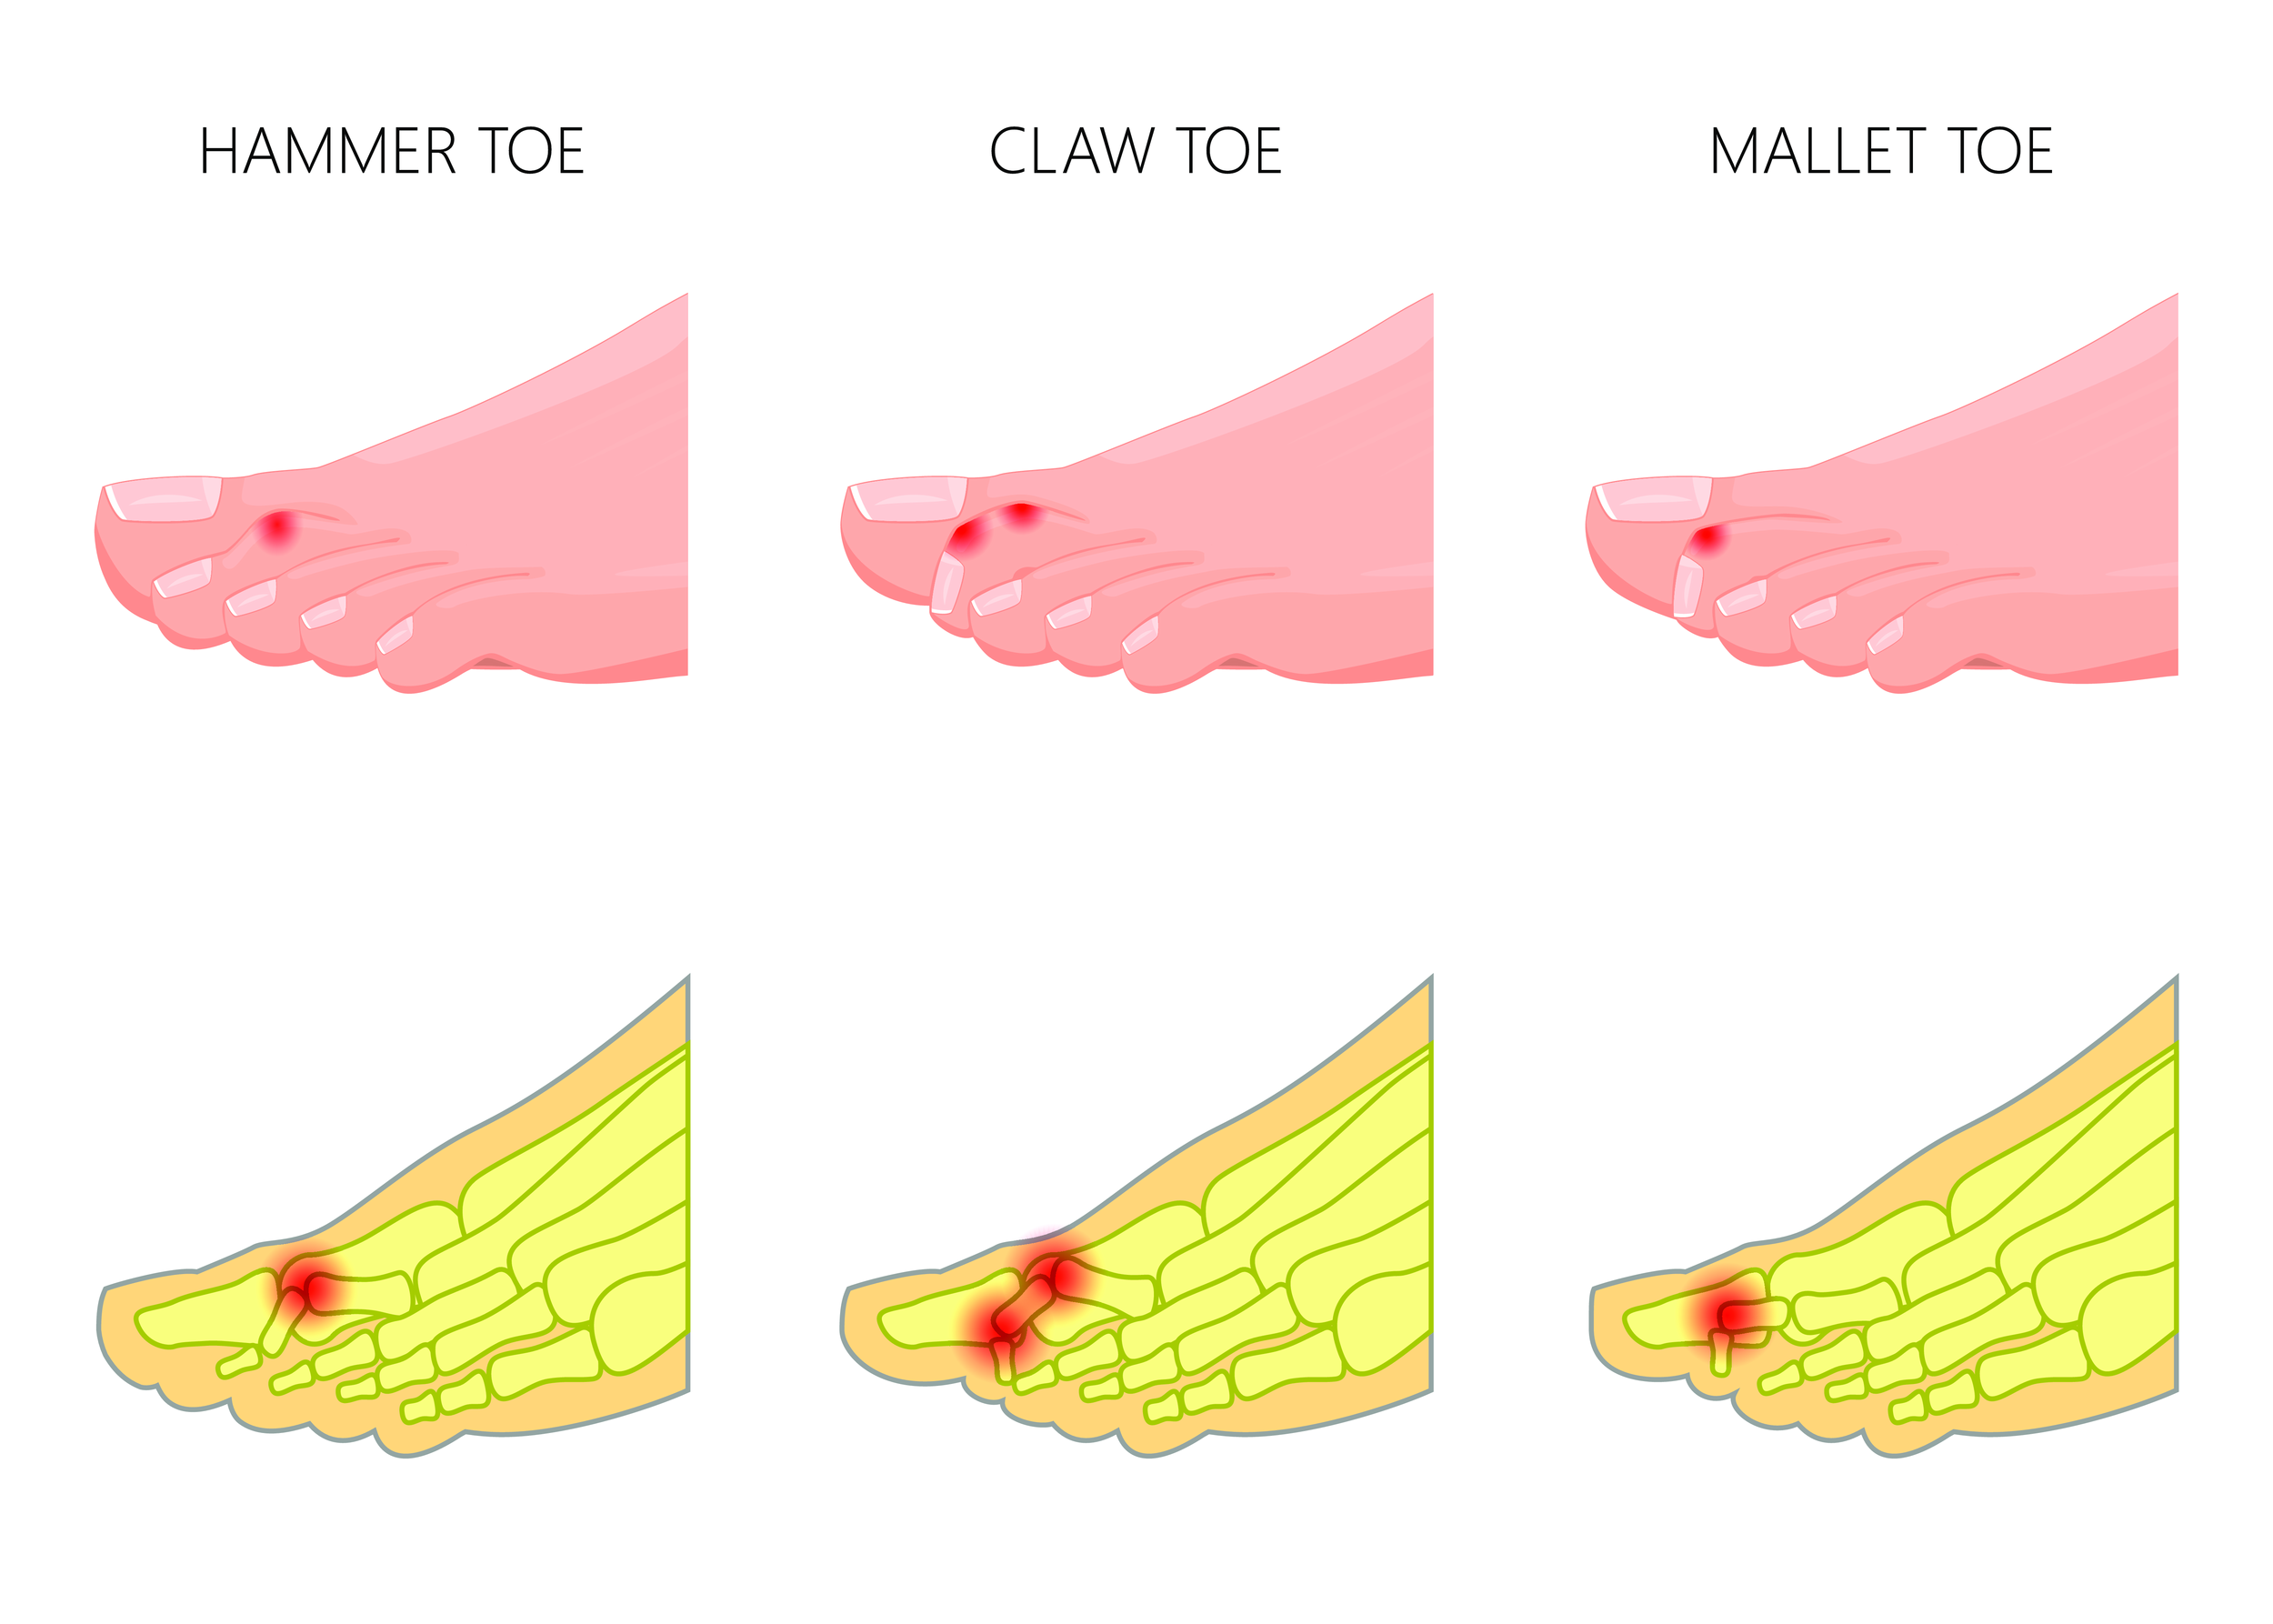 fairfax foot doctor treats hammertoe pain, cosmetic toe surgery